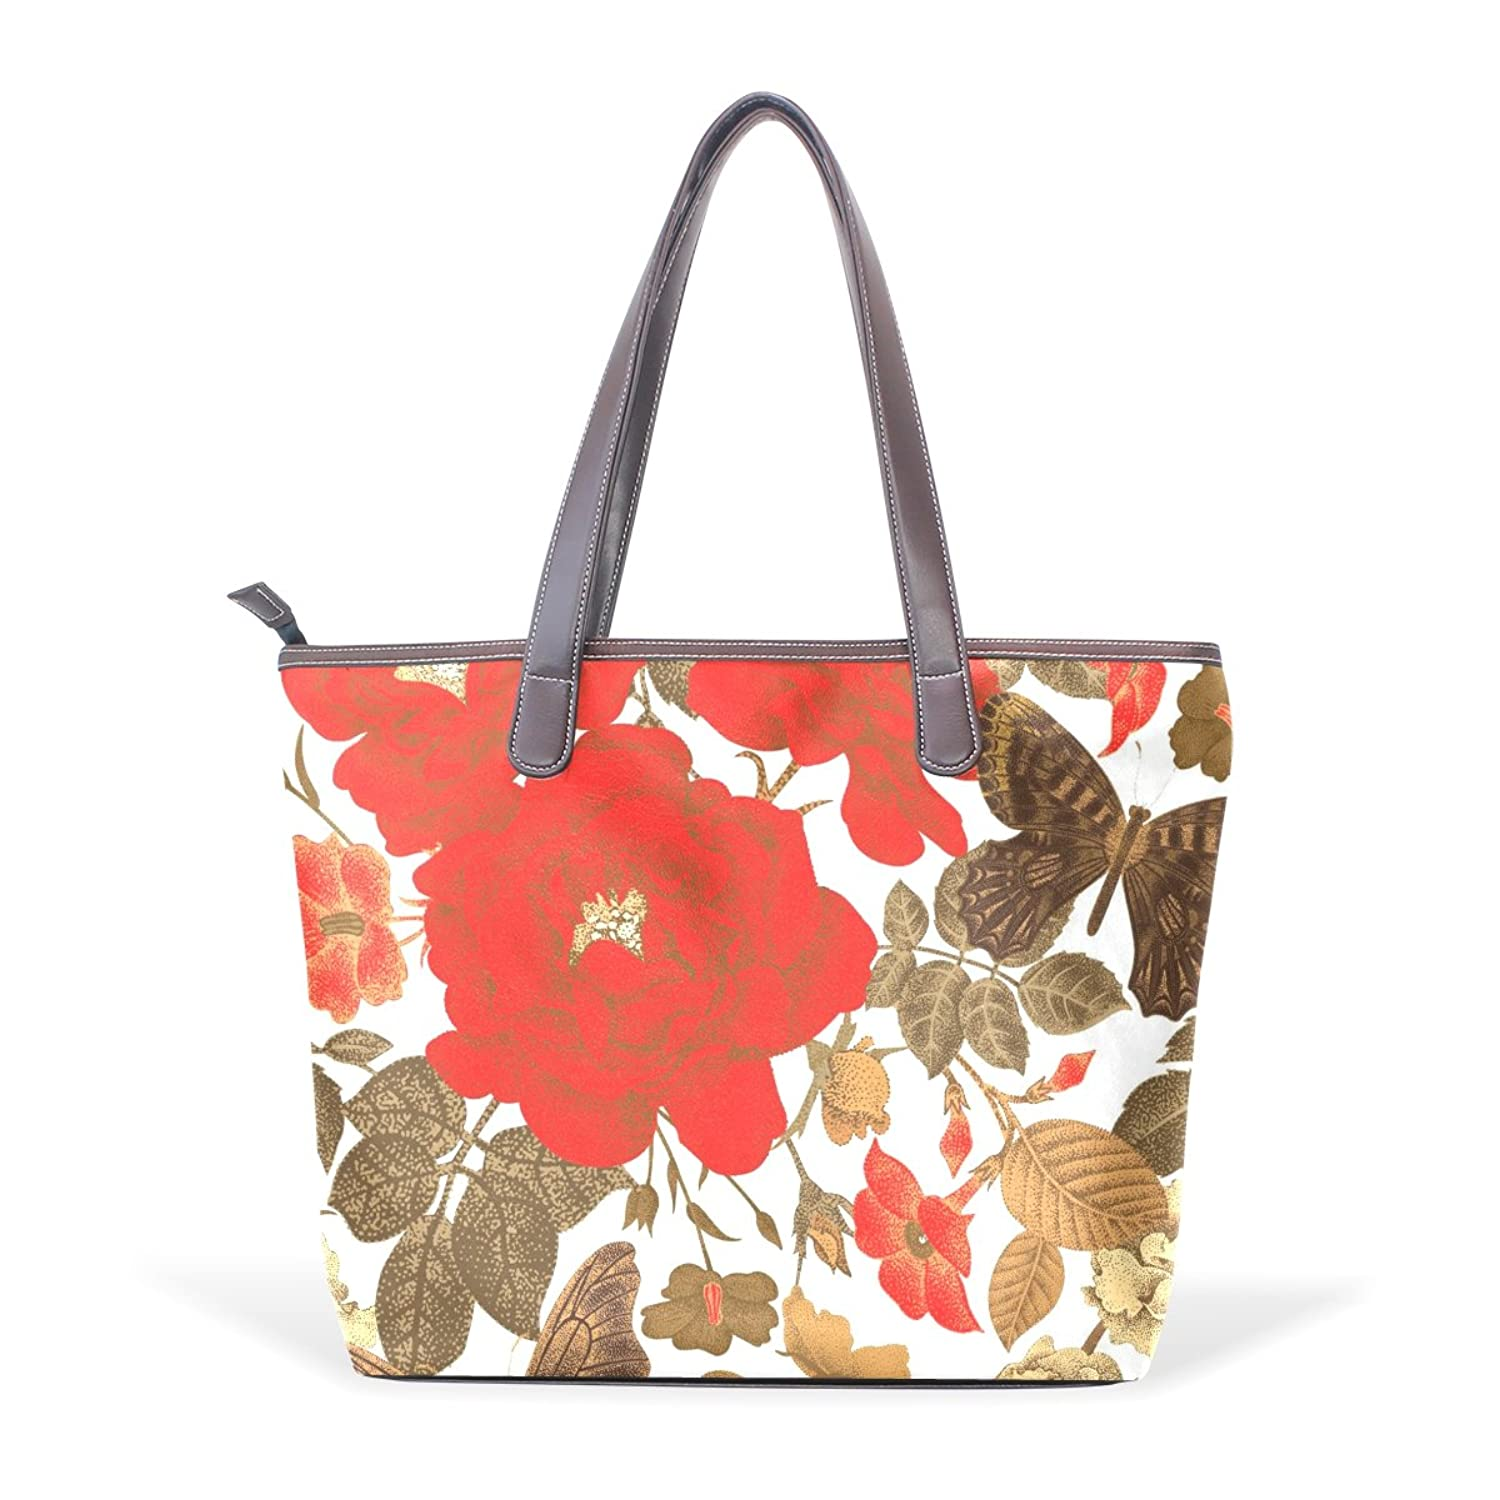 Womens Leather Tote Bag,Hand Drawn Elegant Floral Butterfly,Large Handbag